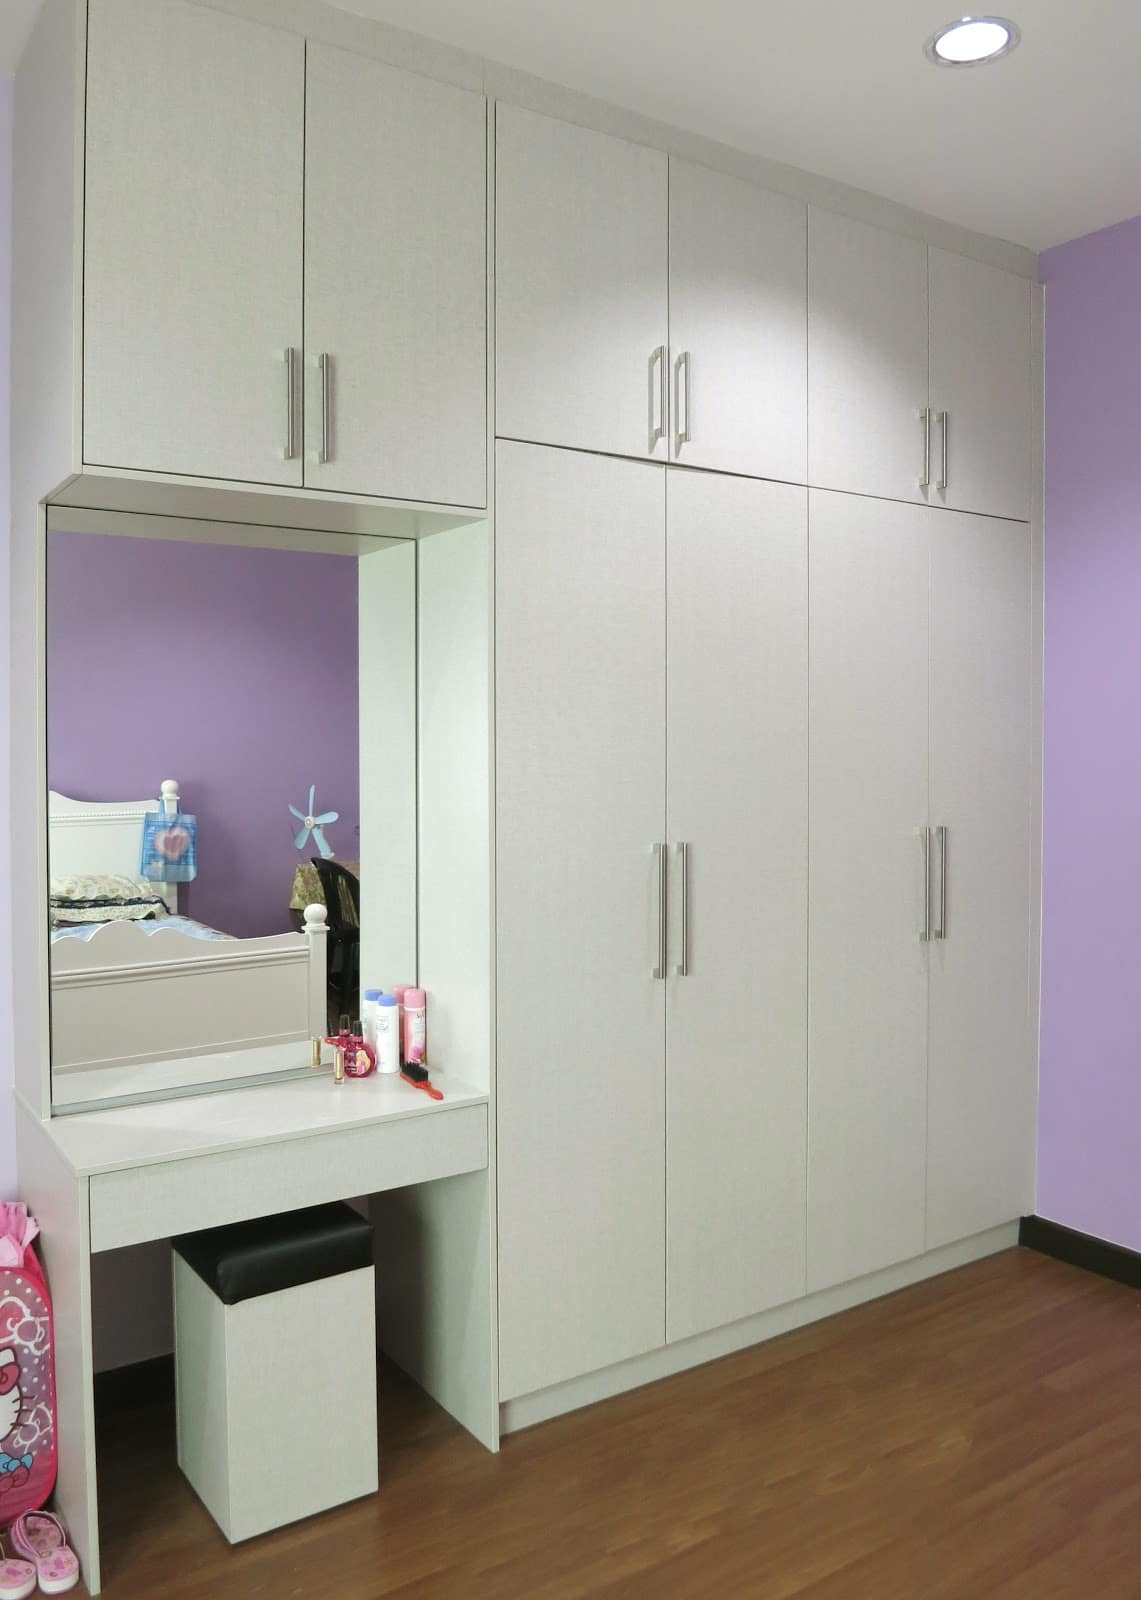 Build In Wardrobe What You Need To Know Before Installing Built In Wardrobes